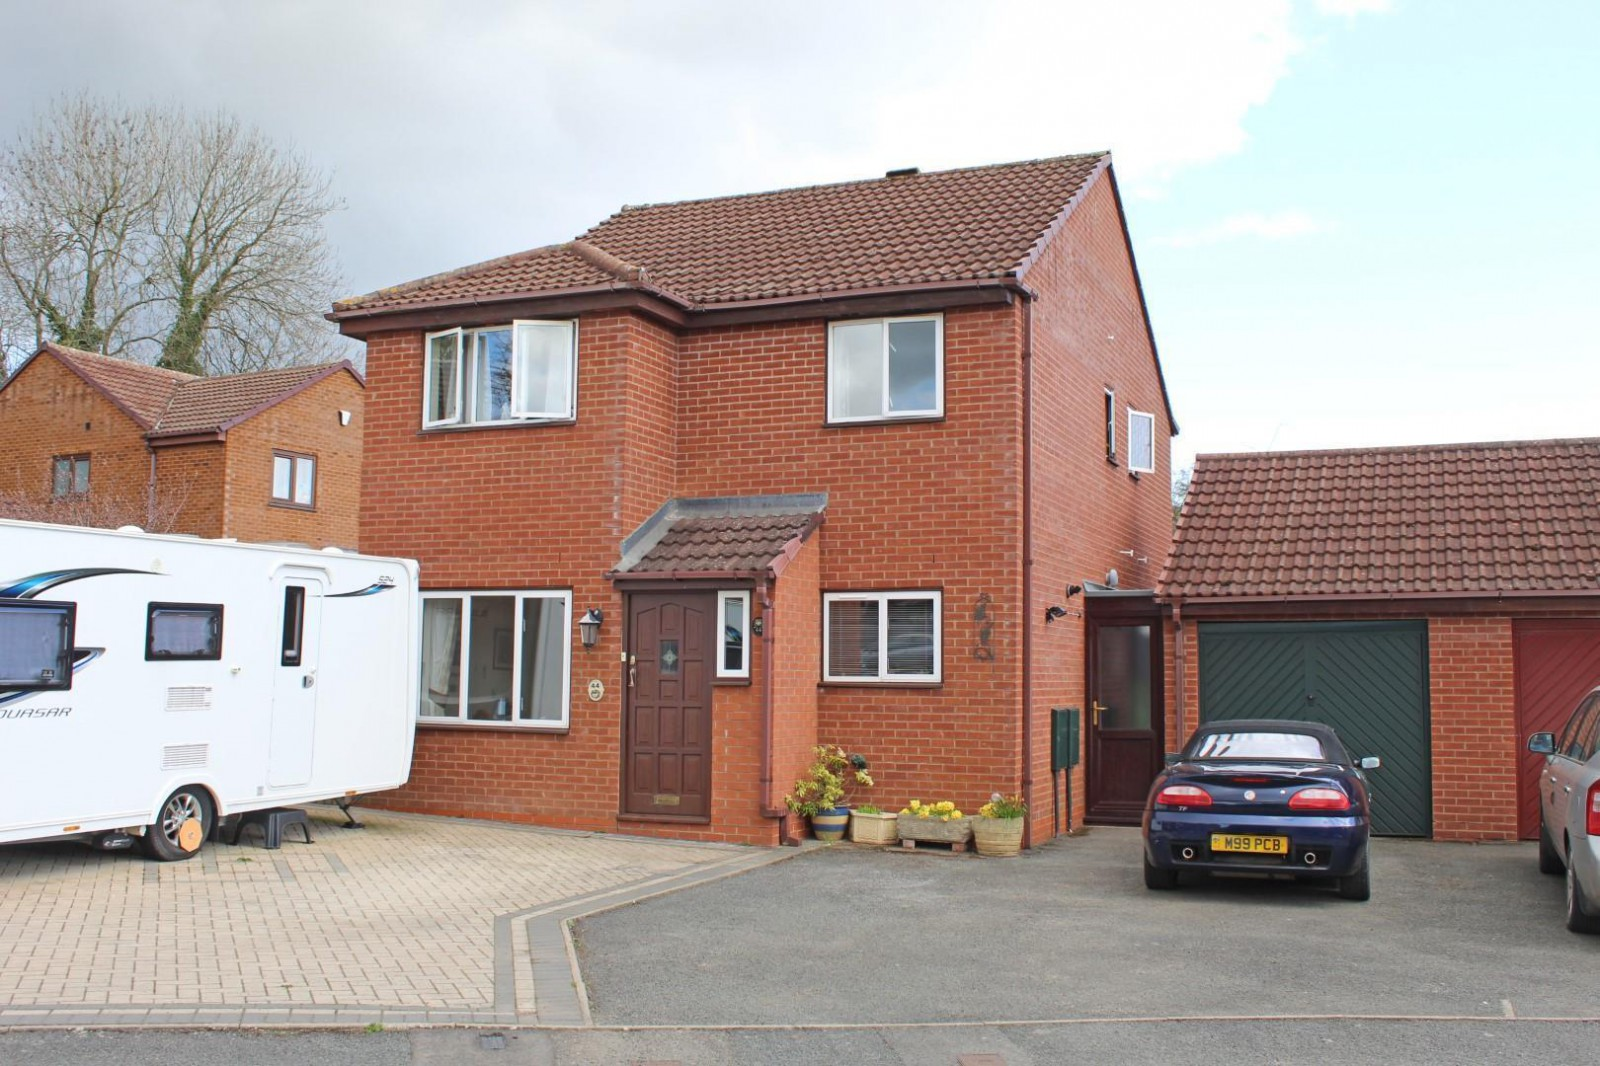 44 Cleeve Orchard, Holmer, Hereford